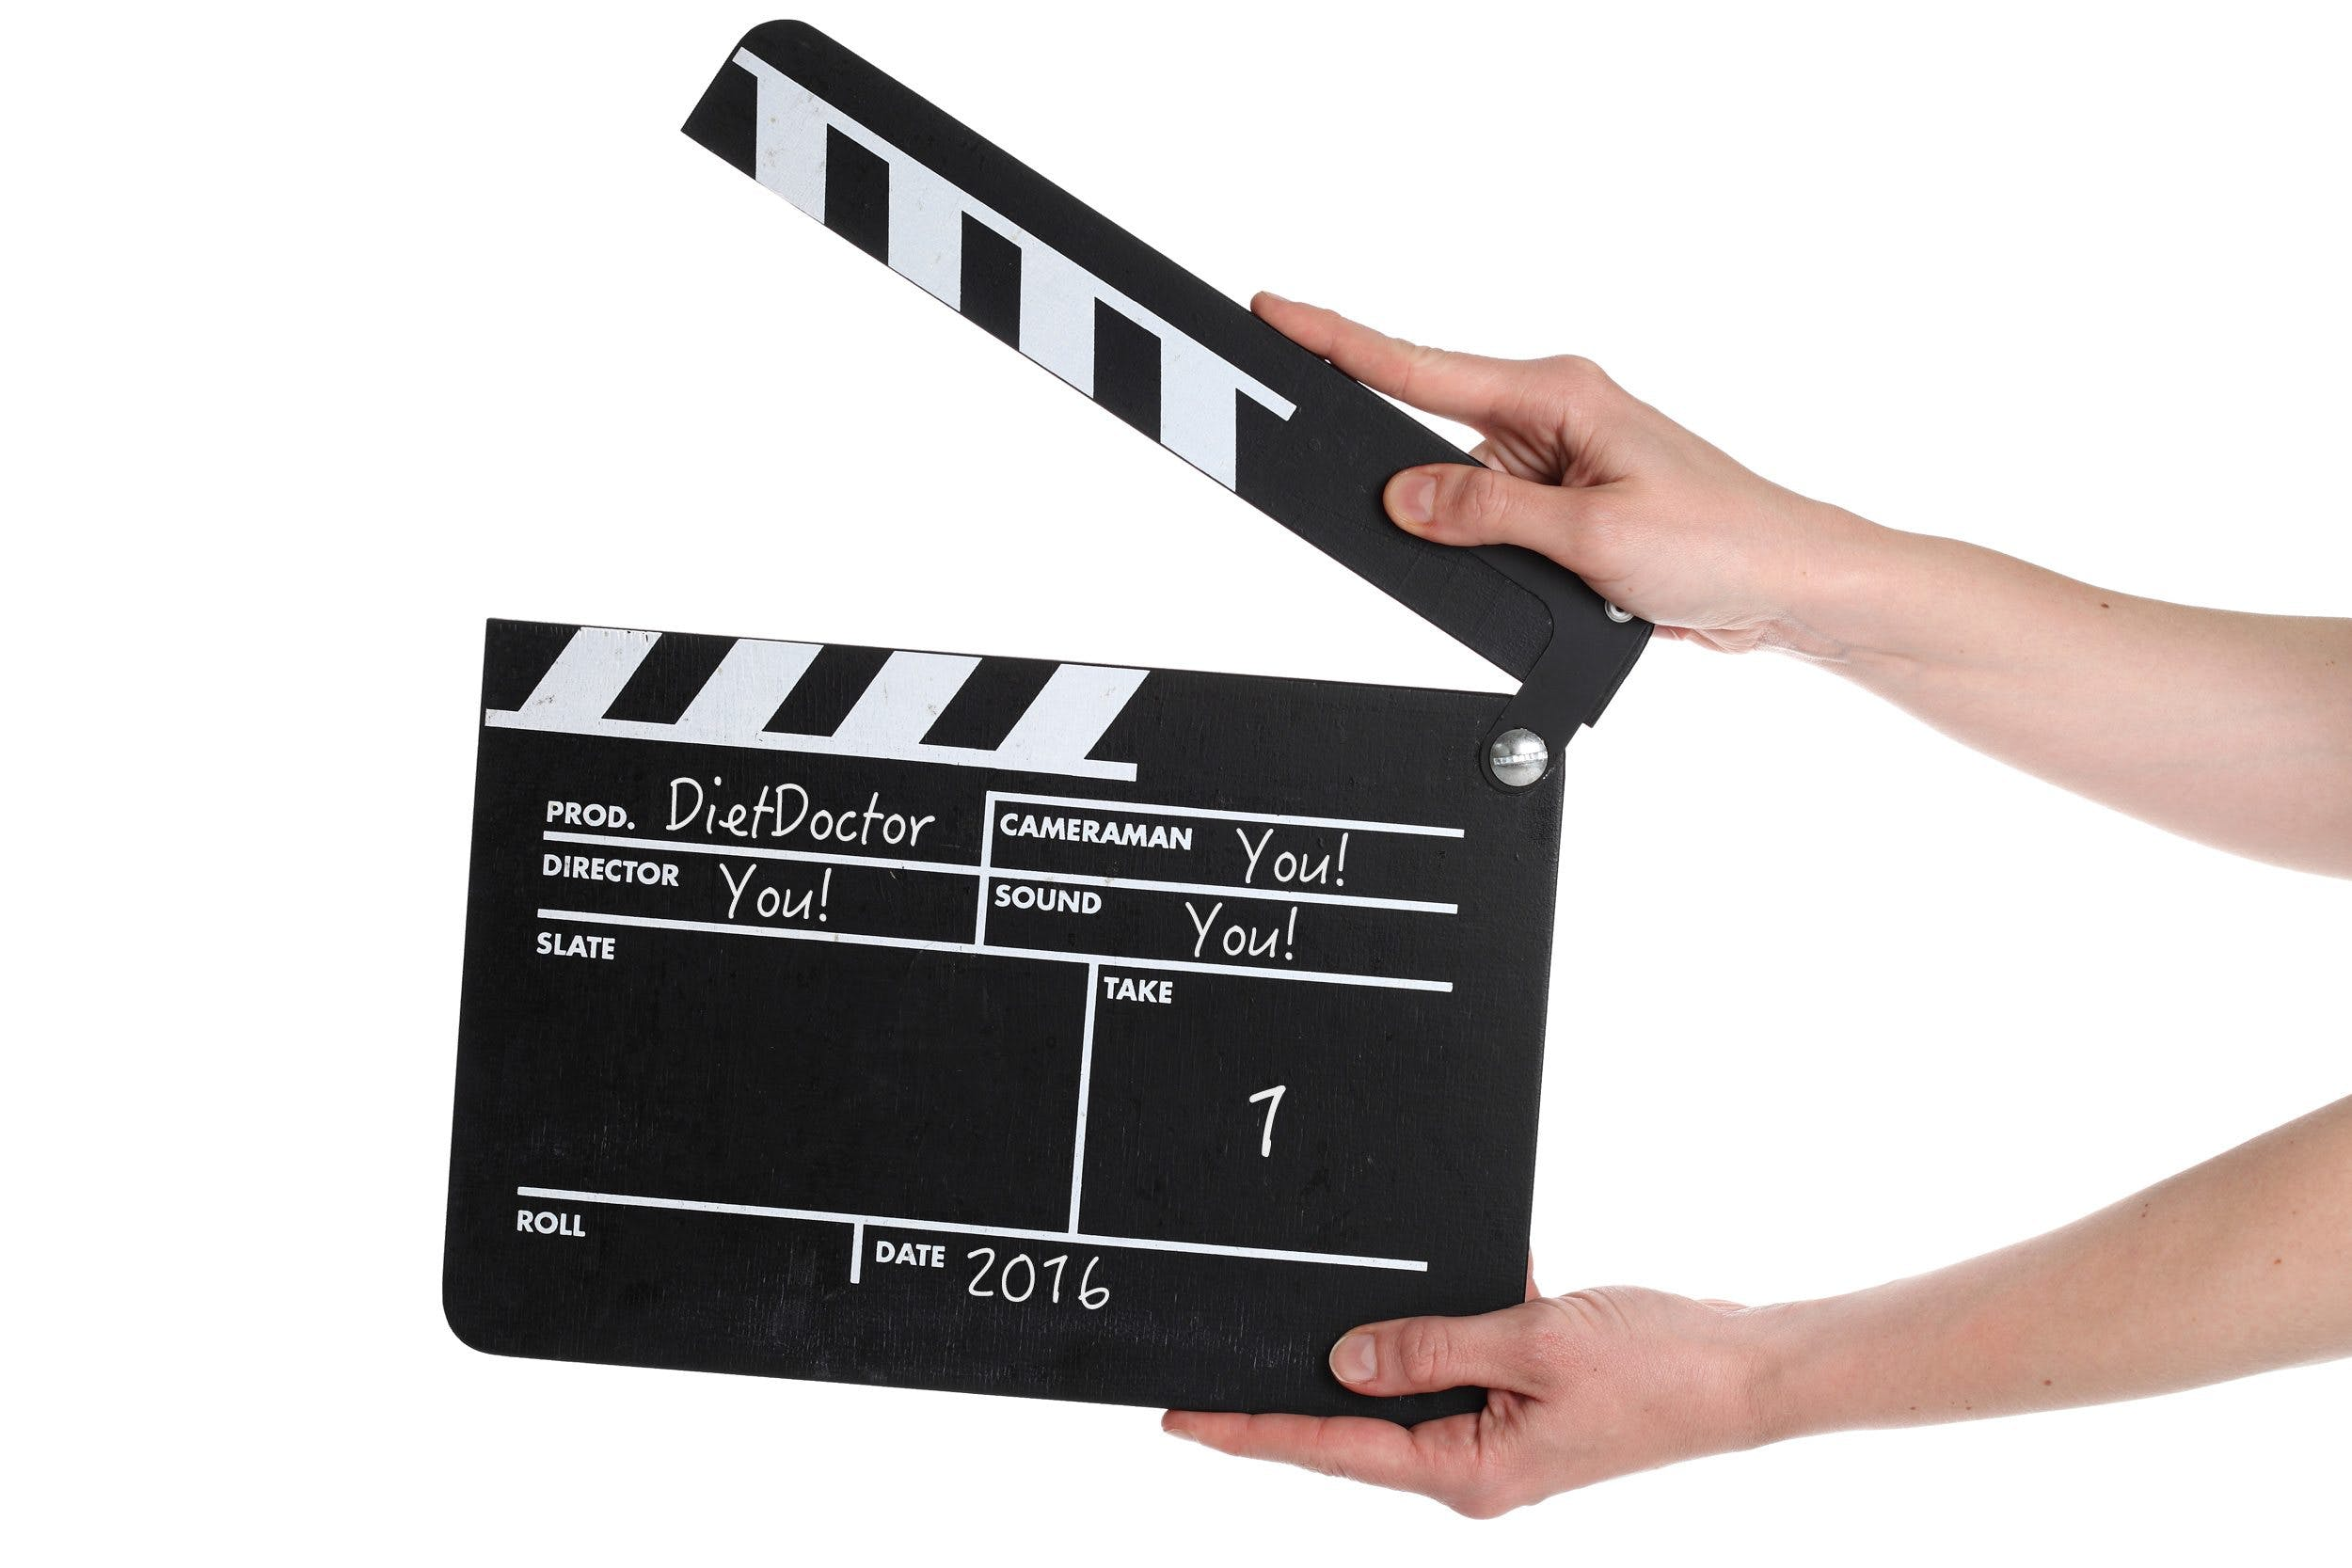 Reminder: Are You Great at Editing Videos? Change the World With Team Diet Doctor in Stockholm